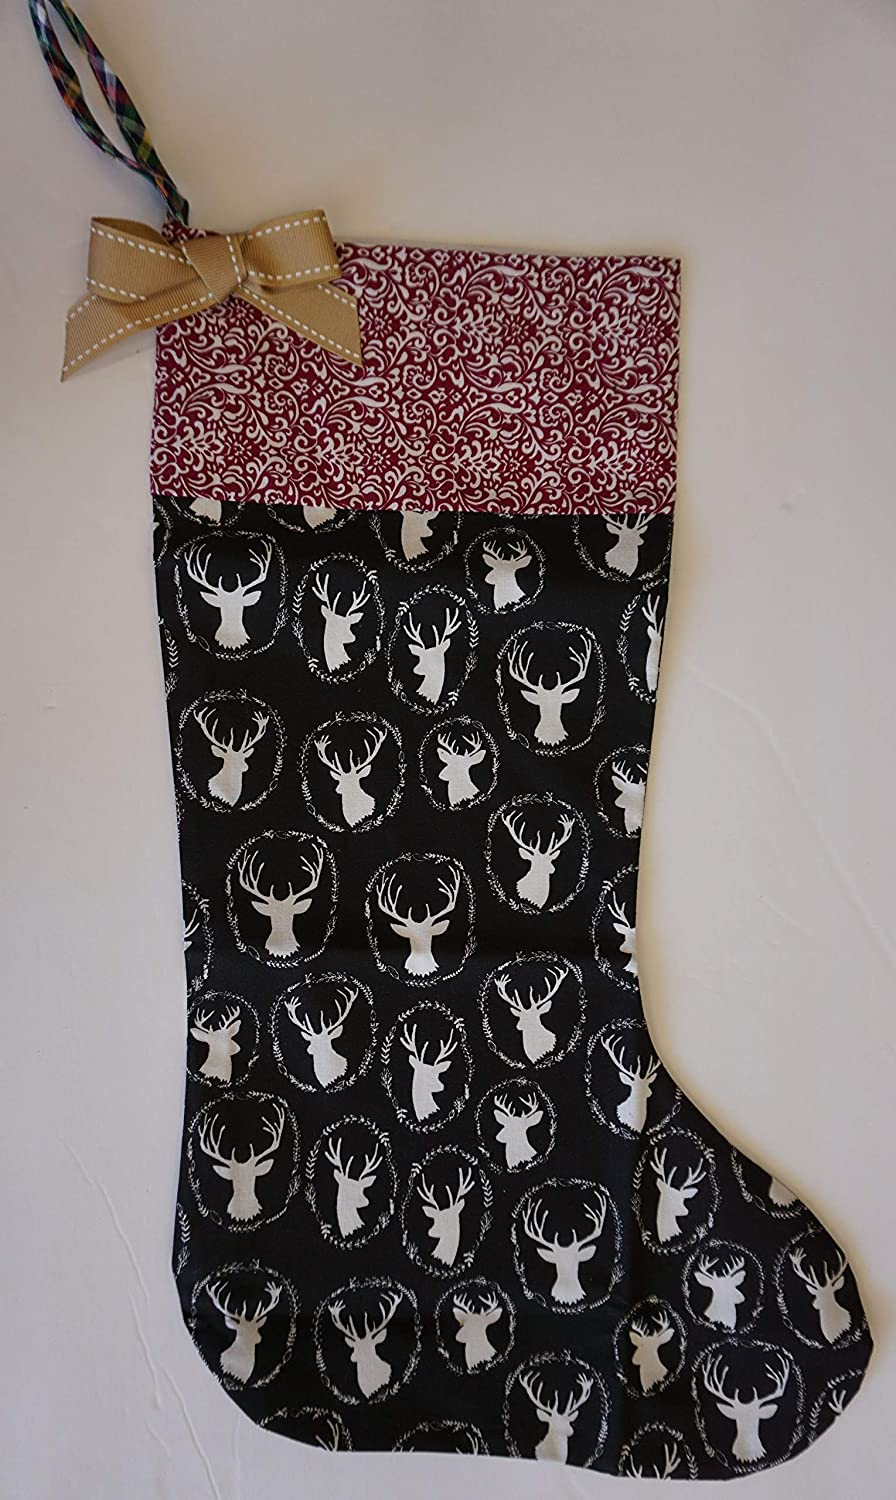 Christmas Stockings New product!! Challenge the lowest price of Japan ☆ Rustic Country Reindeer